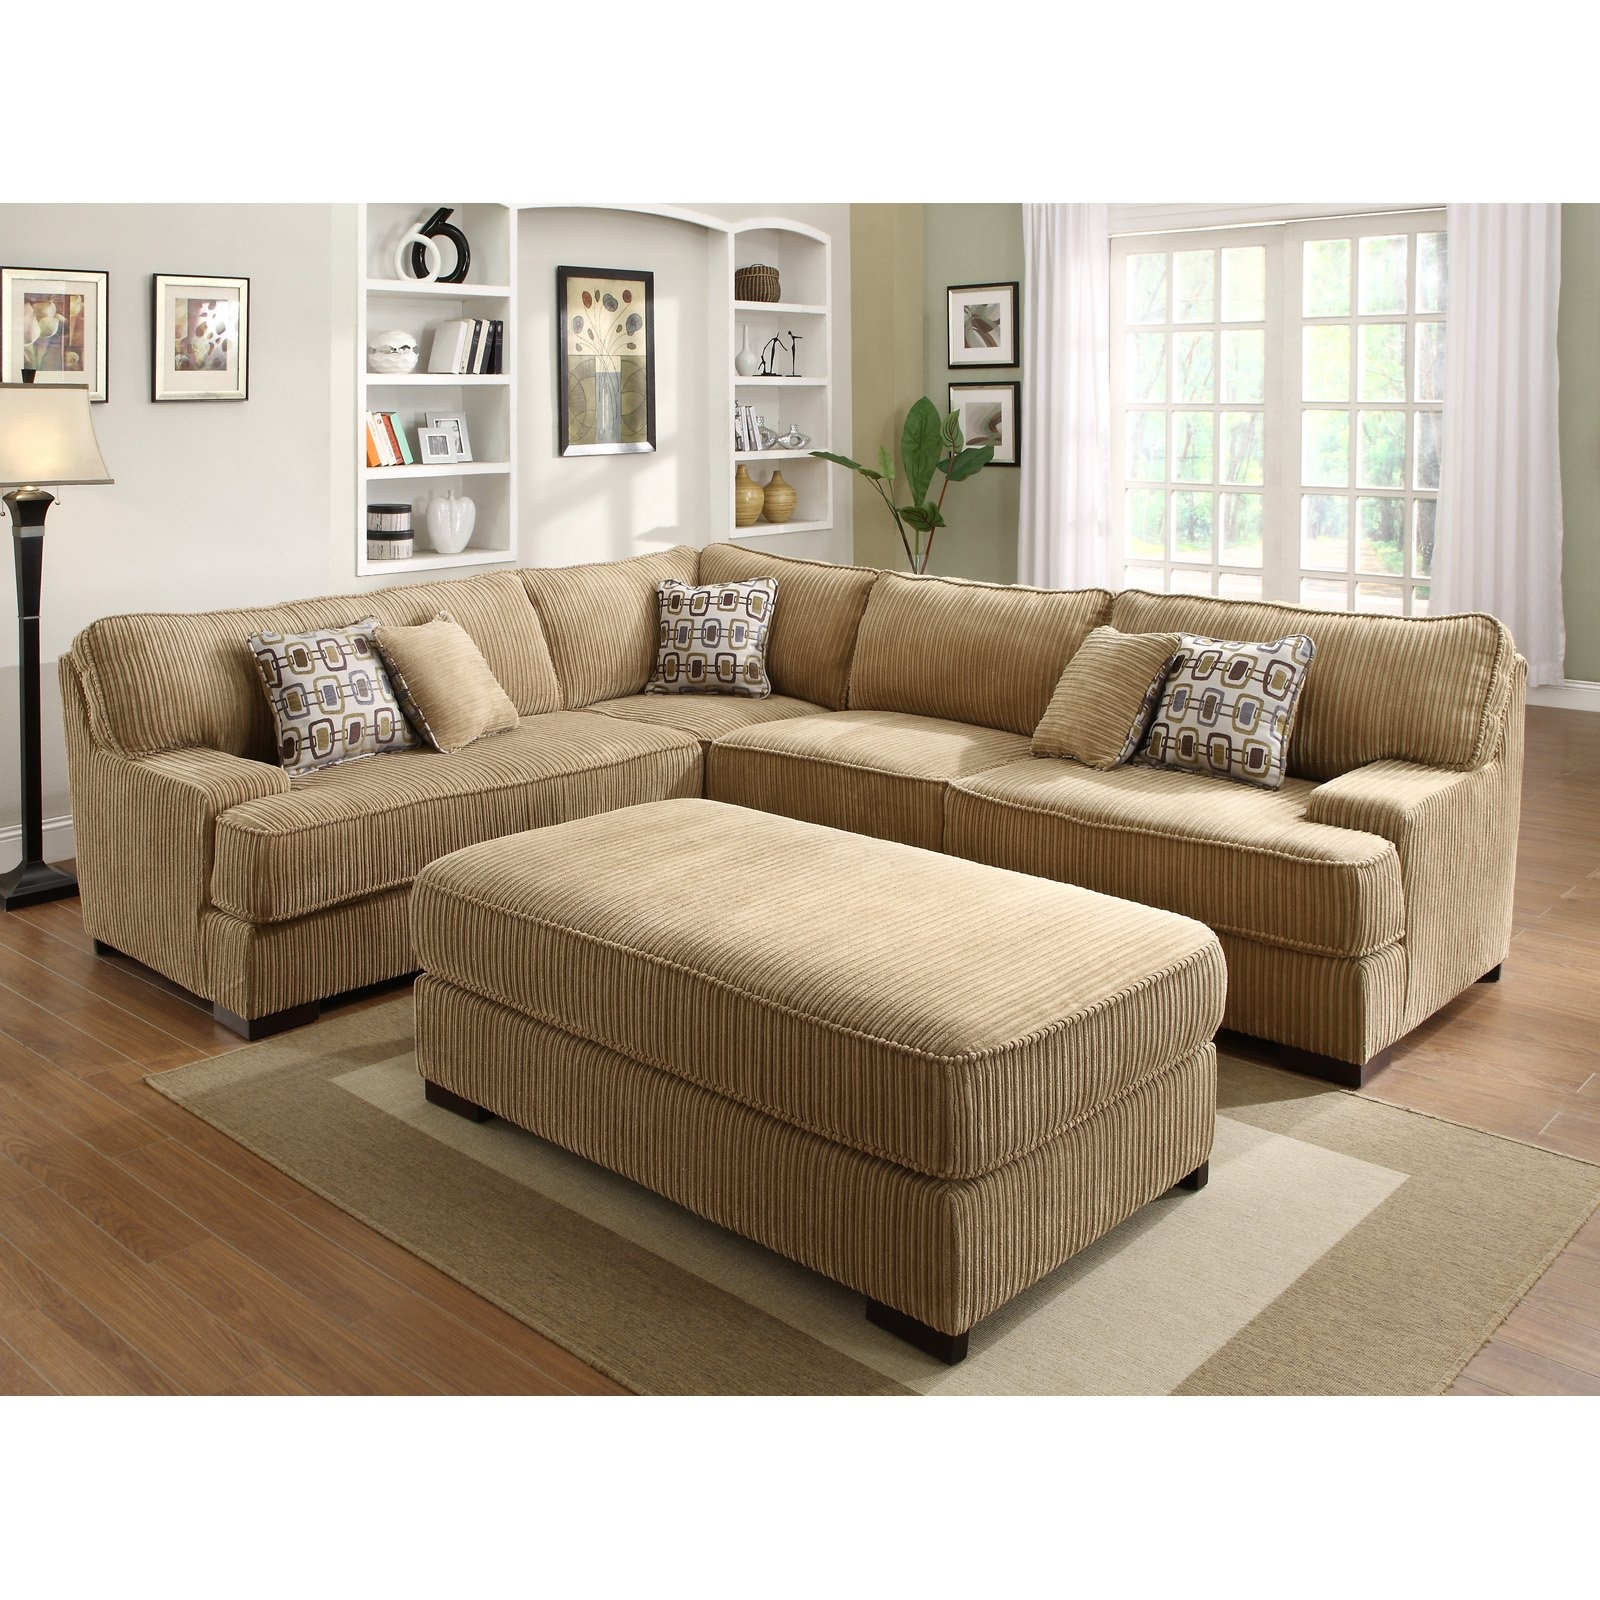 Chenille Sectional Sofas Cleanupflorida Within Chenille Sectional Sofas (#6 of 12)